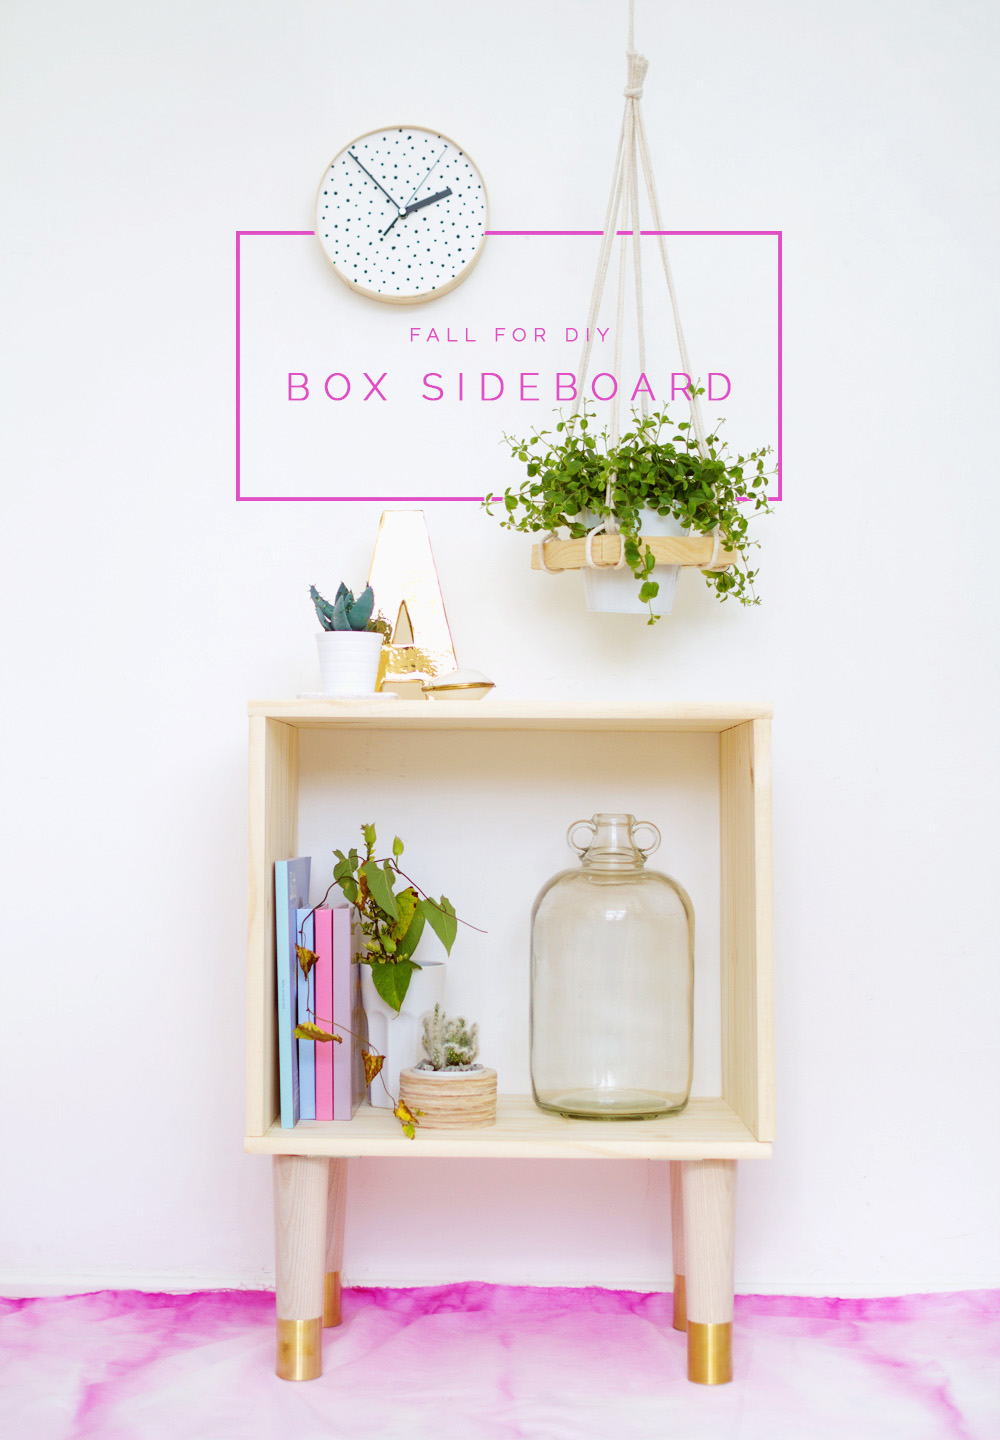 Fall For DIY Box Sideboard tutorial